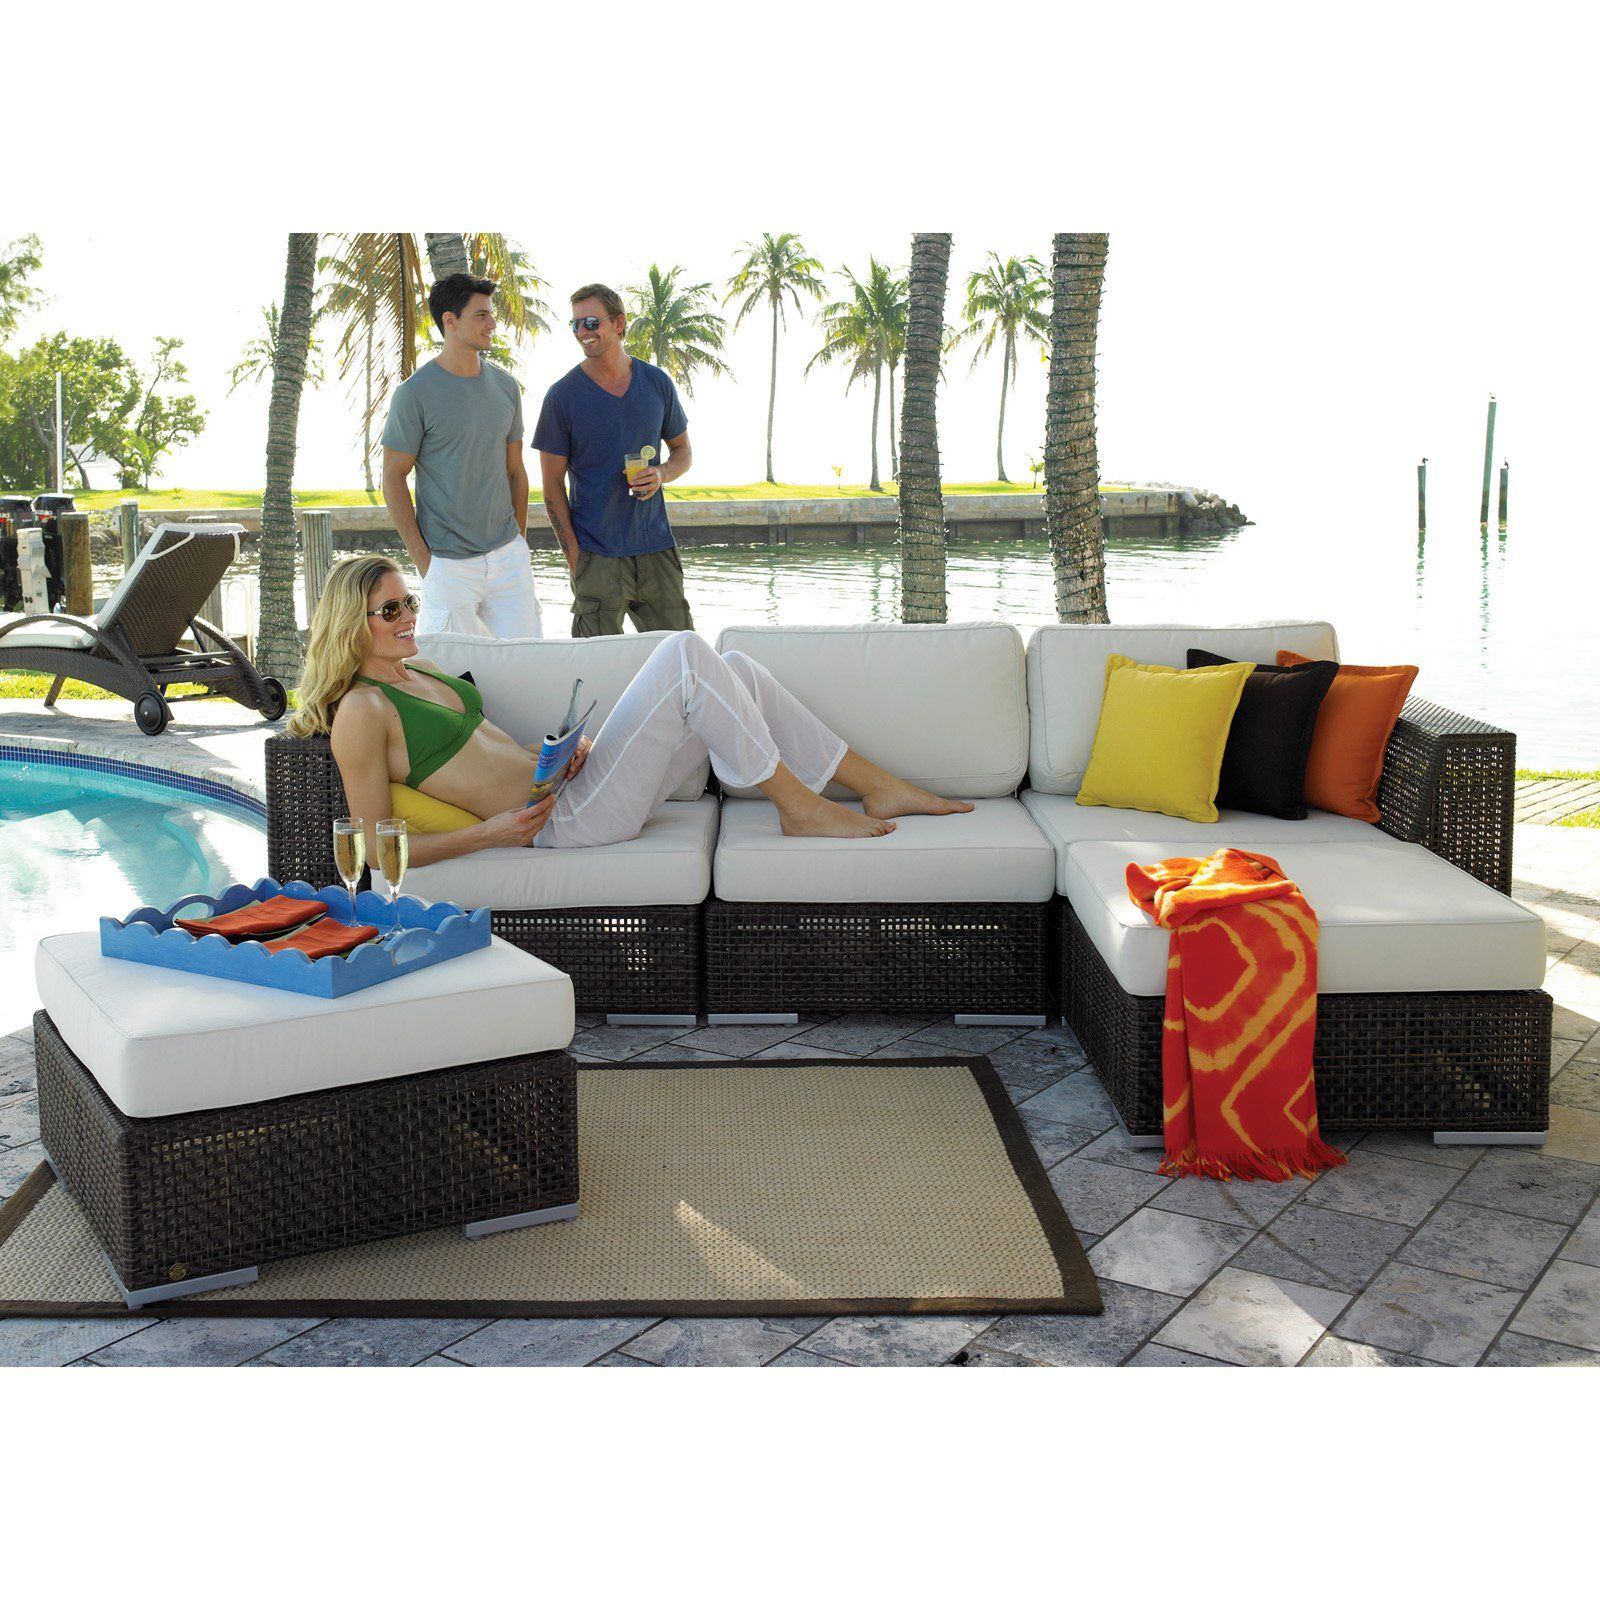 Amazing Outdoor Hospitality Rattan Soho 5 Piece Deep Seating Home Remodeling Inspirations Propsscottssportslandcom